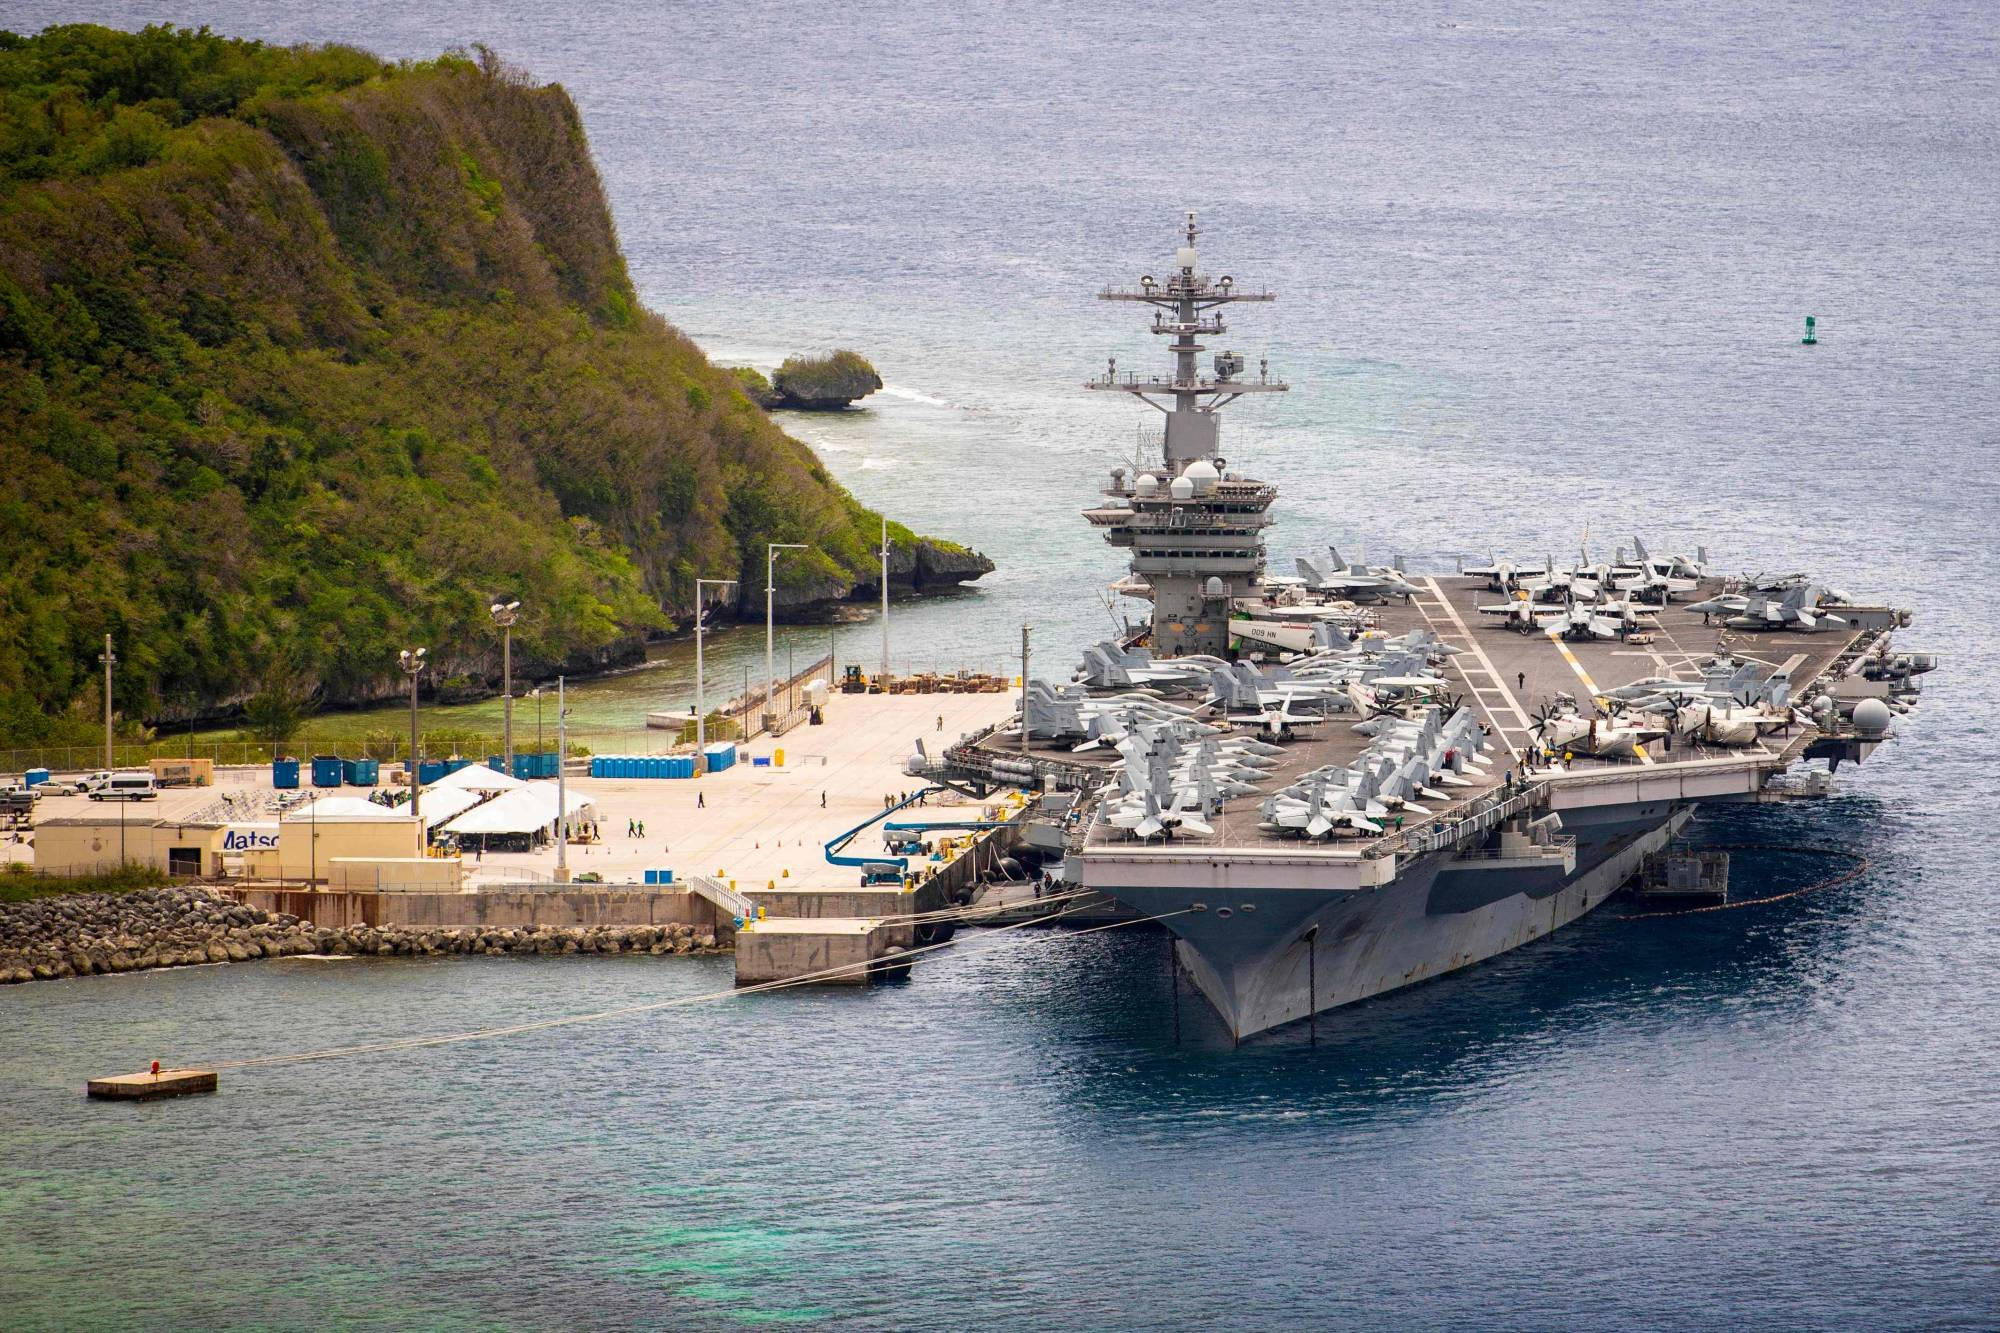 The USS Theodore Roosevelt aircraft carrier is moored pierside at Naval Base Guam last May. The carrier's strike group sailed into the South China Sea on a 'freedom of navigation' exercise over the weekend, the first such operation in the region under new U.S. President Joe Biden.  | U.S. NAVY / VIA AFP-JIJI